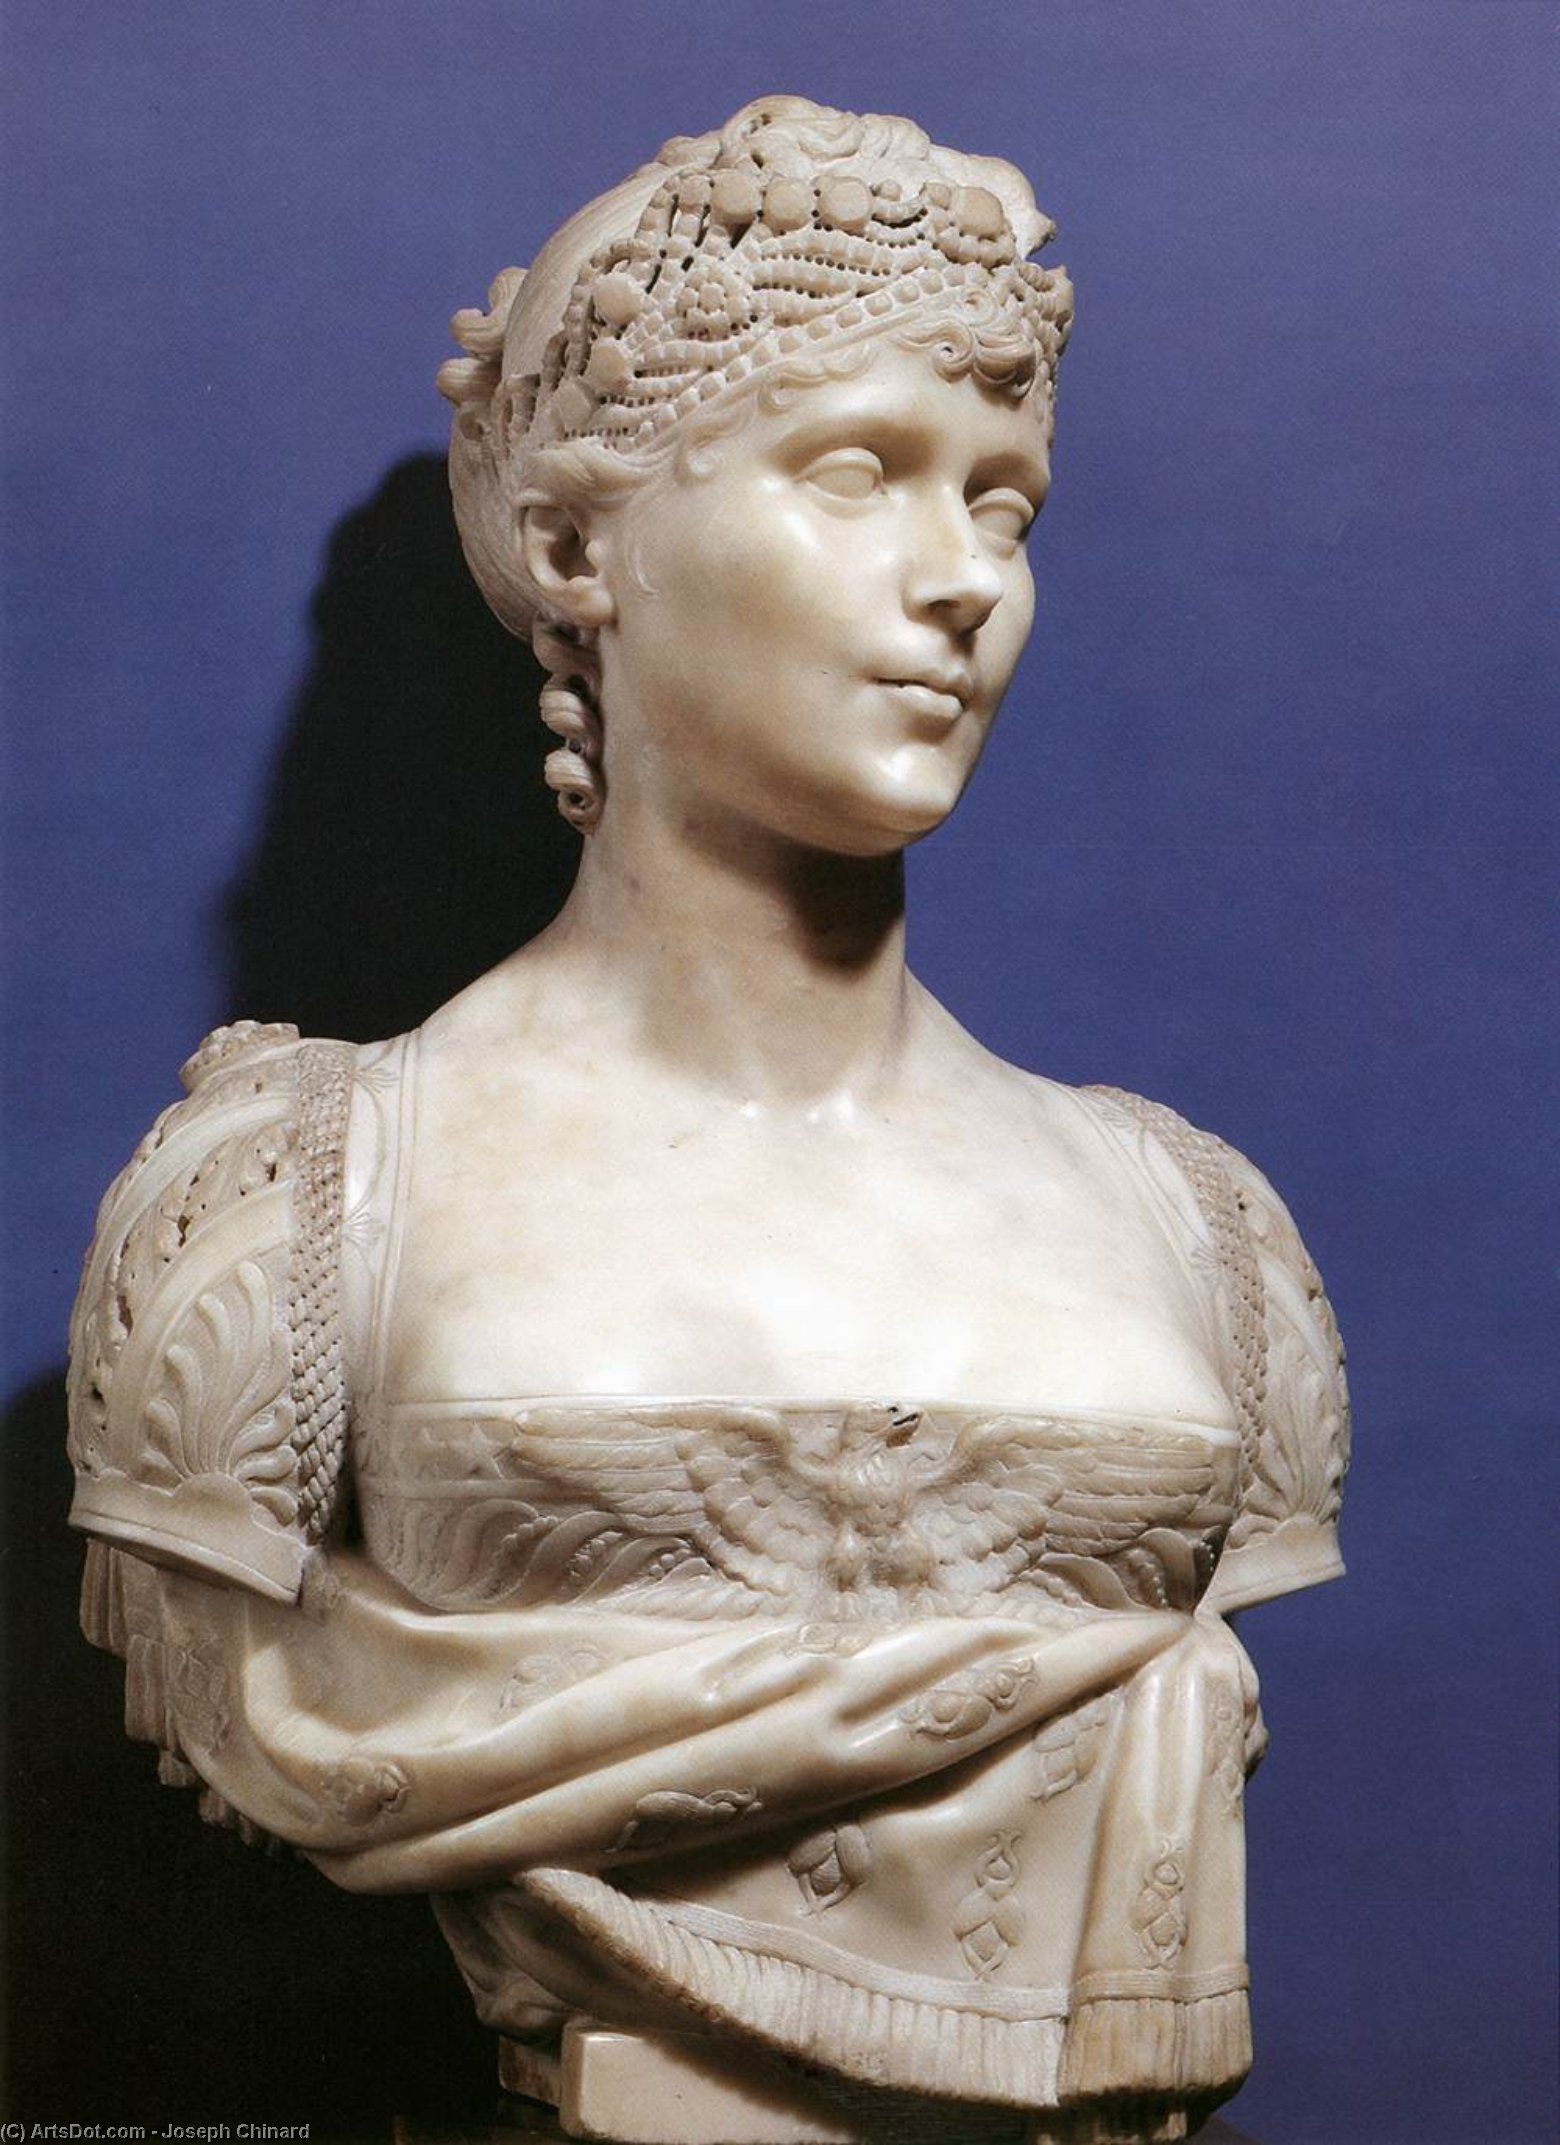 Bust of Empress Josephine, Marble by Joseph Chinard (1756-1813, France)